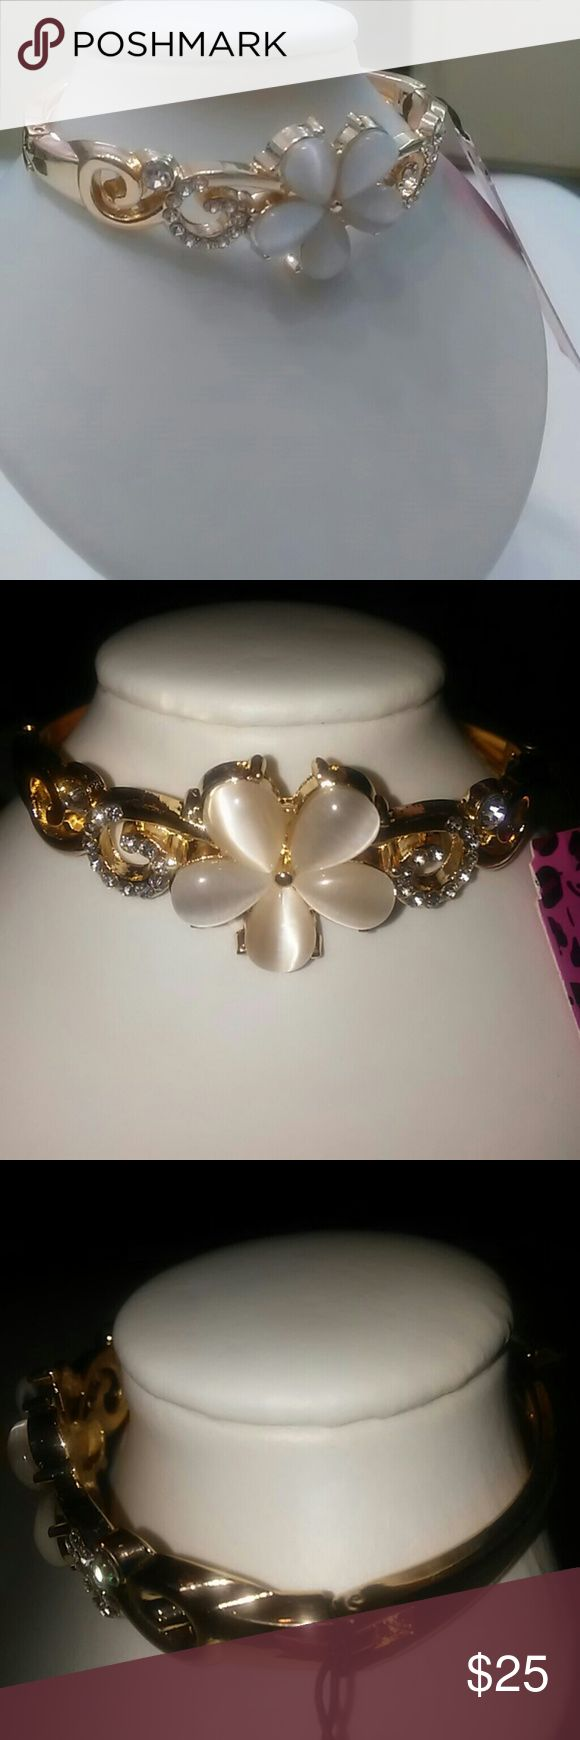 😃😃New with tags bracelet Gardenia Betsy Johnson 😃😃Sale Last Drop😃😃😃😃New with tags Betsy Johnson Gardenia Flower bracelet never worn used comes in a Beautiful black  Storage box. This bracelet is gorgeous shines so pretty  A white flower in front looks like a pearl appearance  With silver rhynestones on both  sides All Pictures taken by me this bracelet is astonishing  I love it  Only one available Accessories